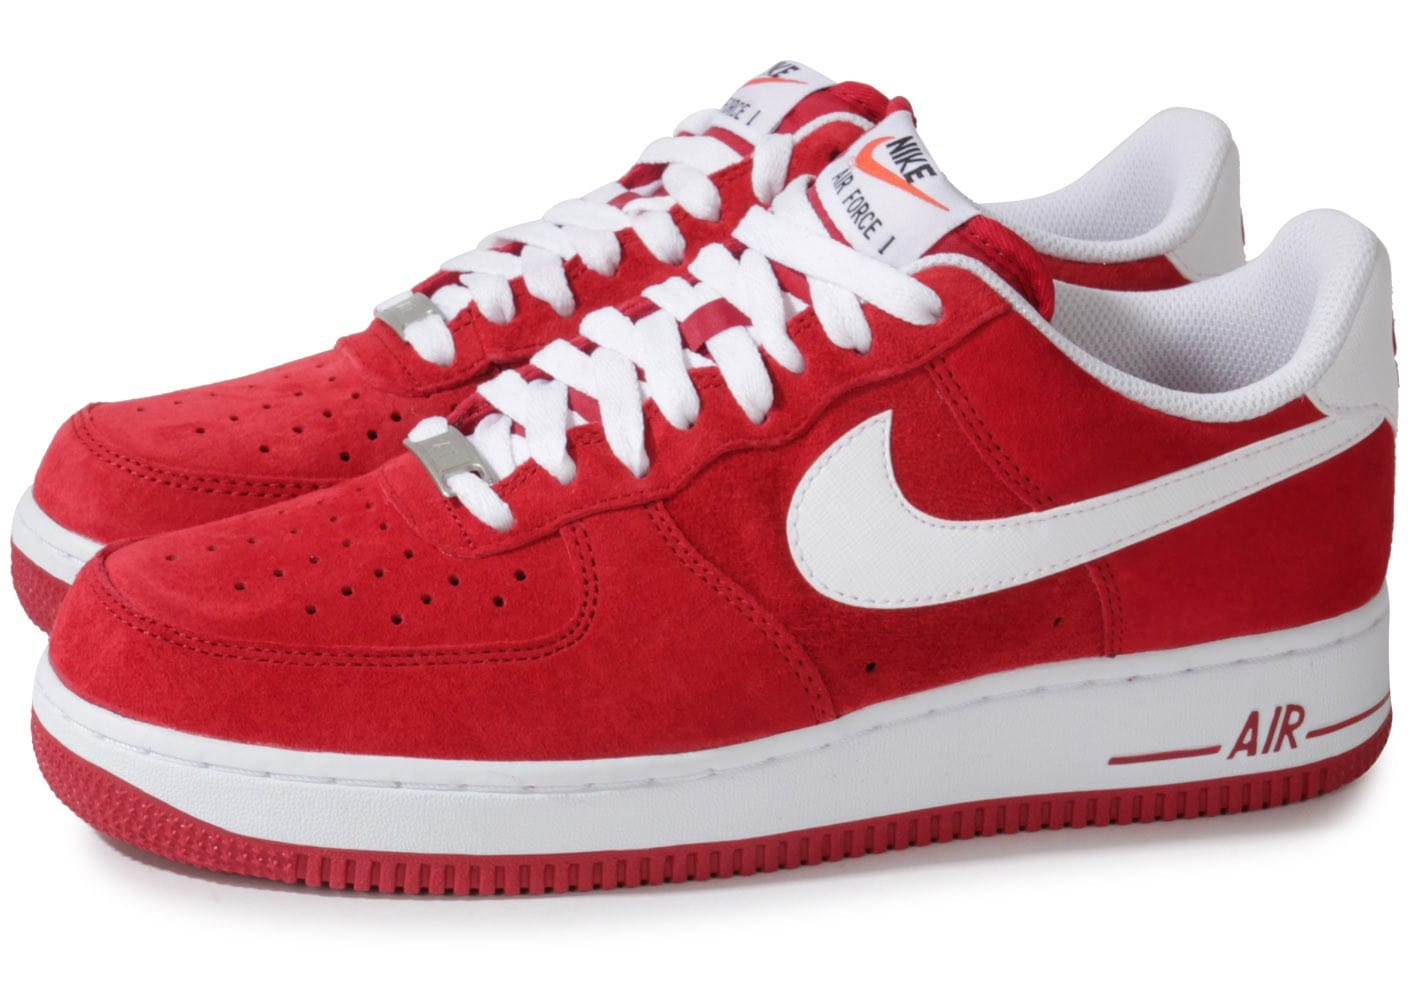 Nike Air Force 1 Suede Rouge - Chaussures Baskets homme ...